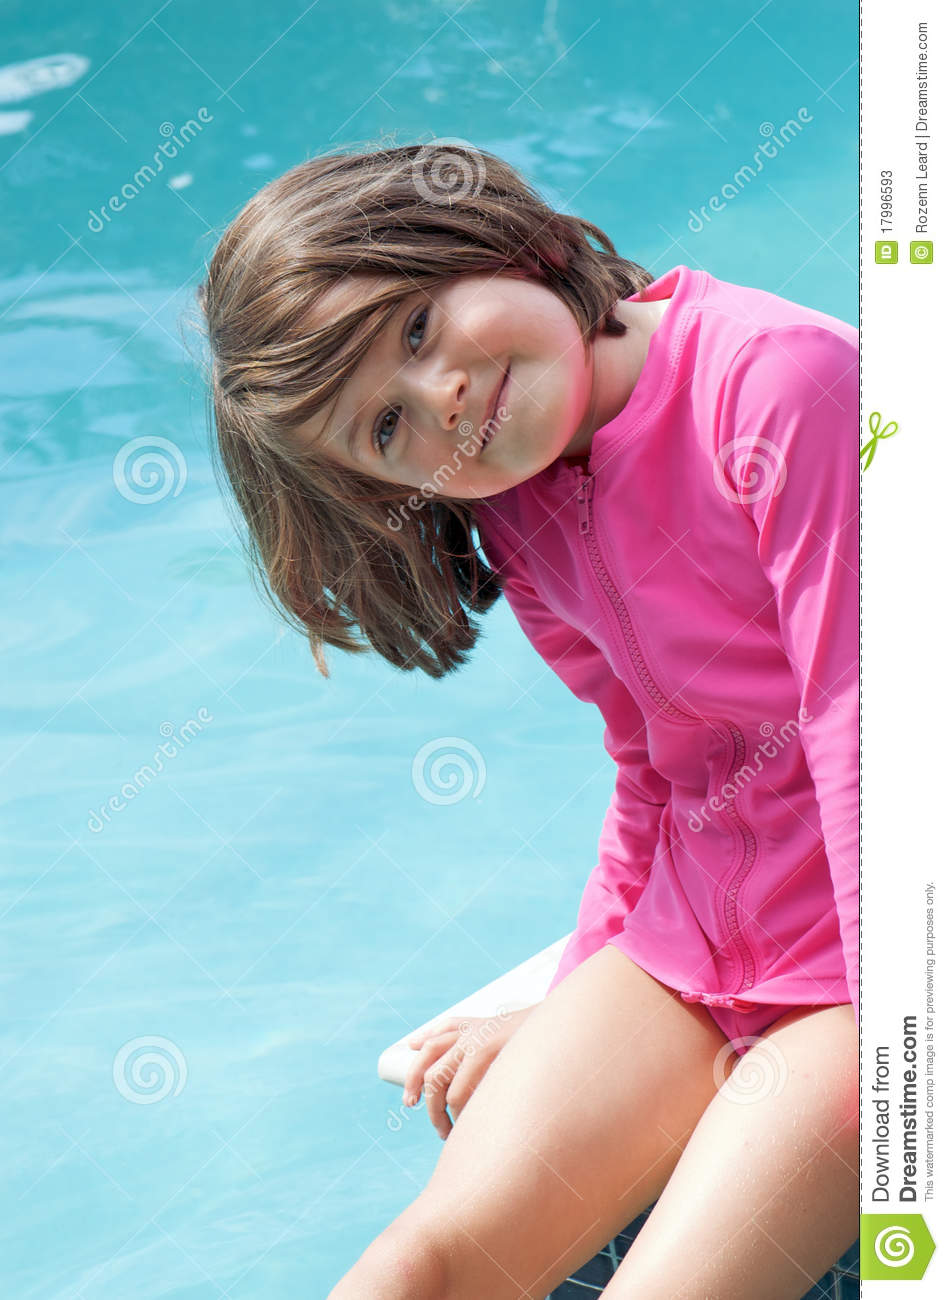 Pink Girl At The Blue Pool Stock Photos Image 17996593